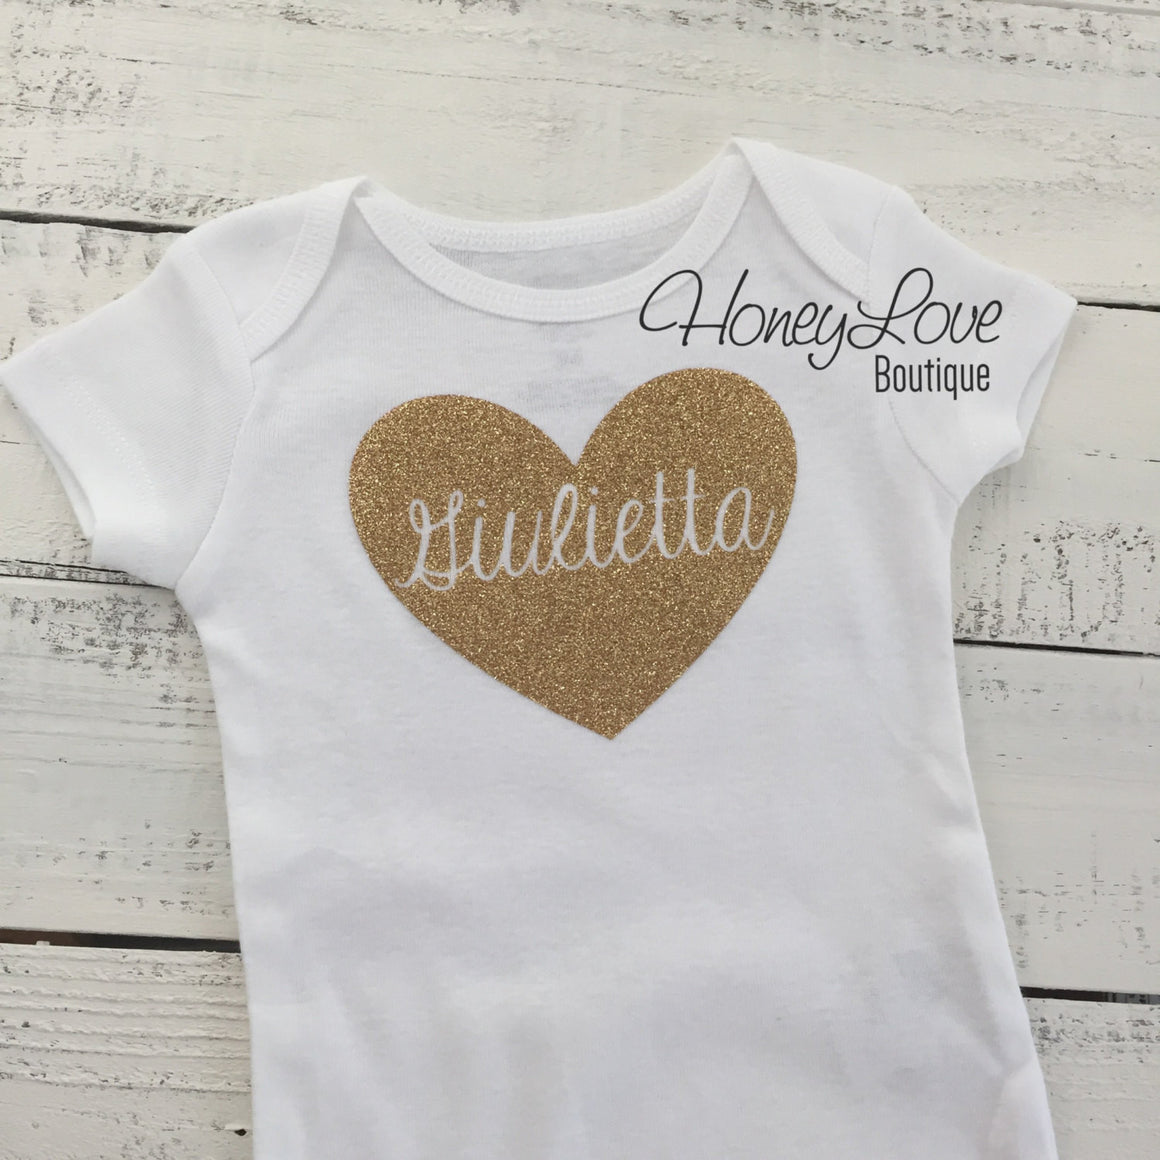 PERSONALIZED Name inside Heart - Gold glitter and Peach - HoneyLoveBoutique